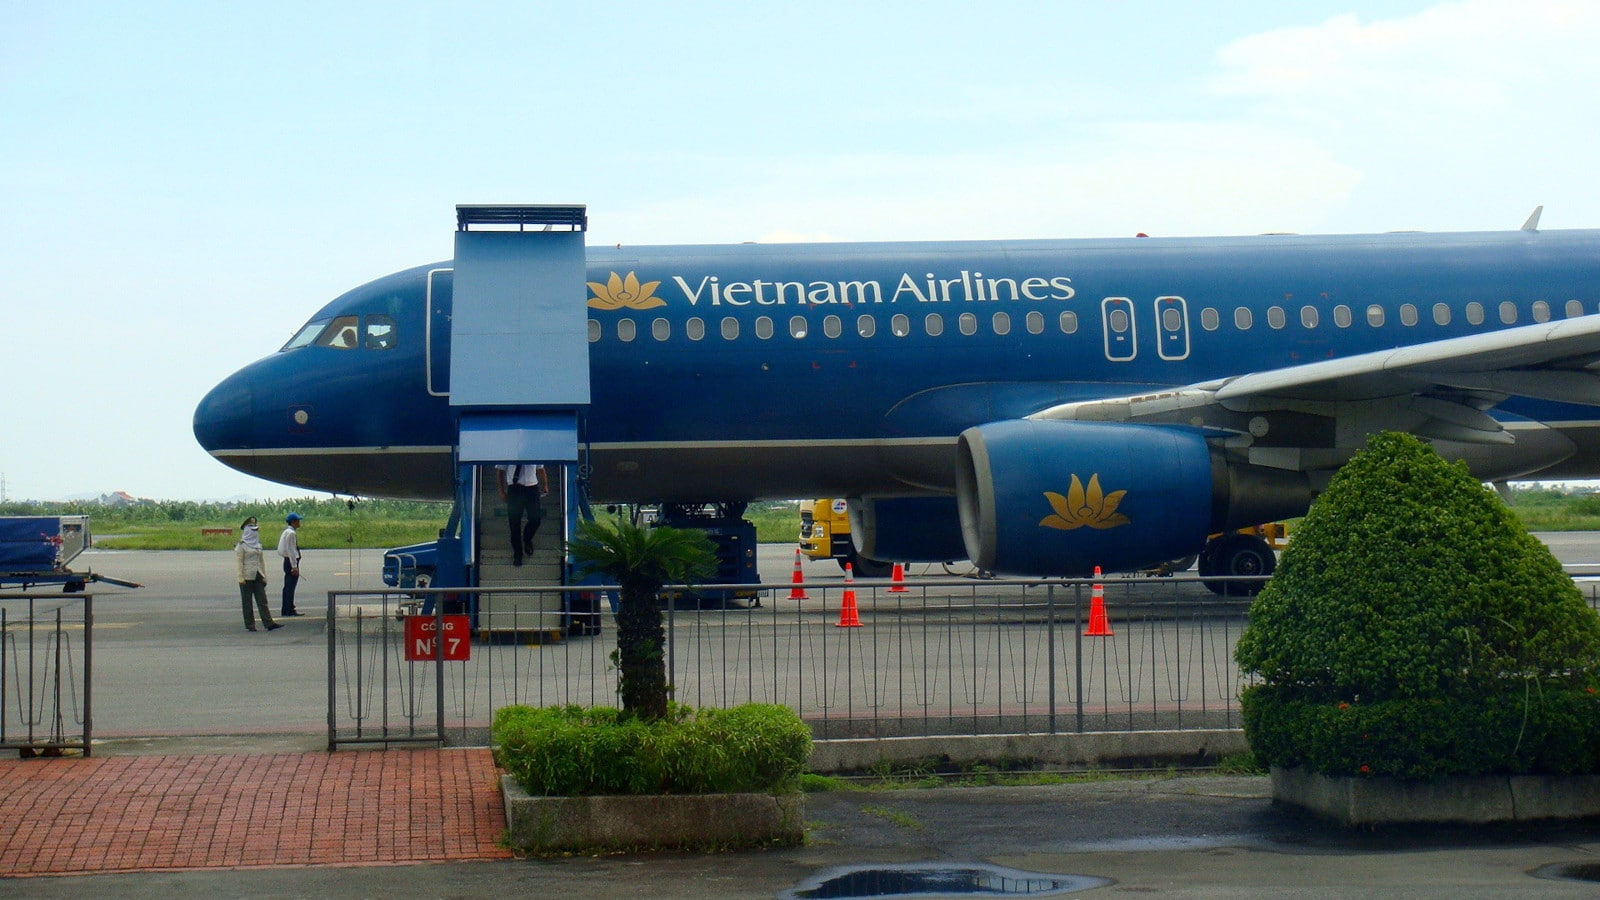 Image of a Vietnam Airlines plane at the Cat Bi International Airport in Vietnam